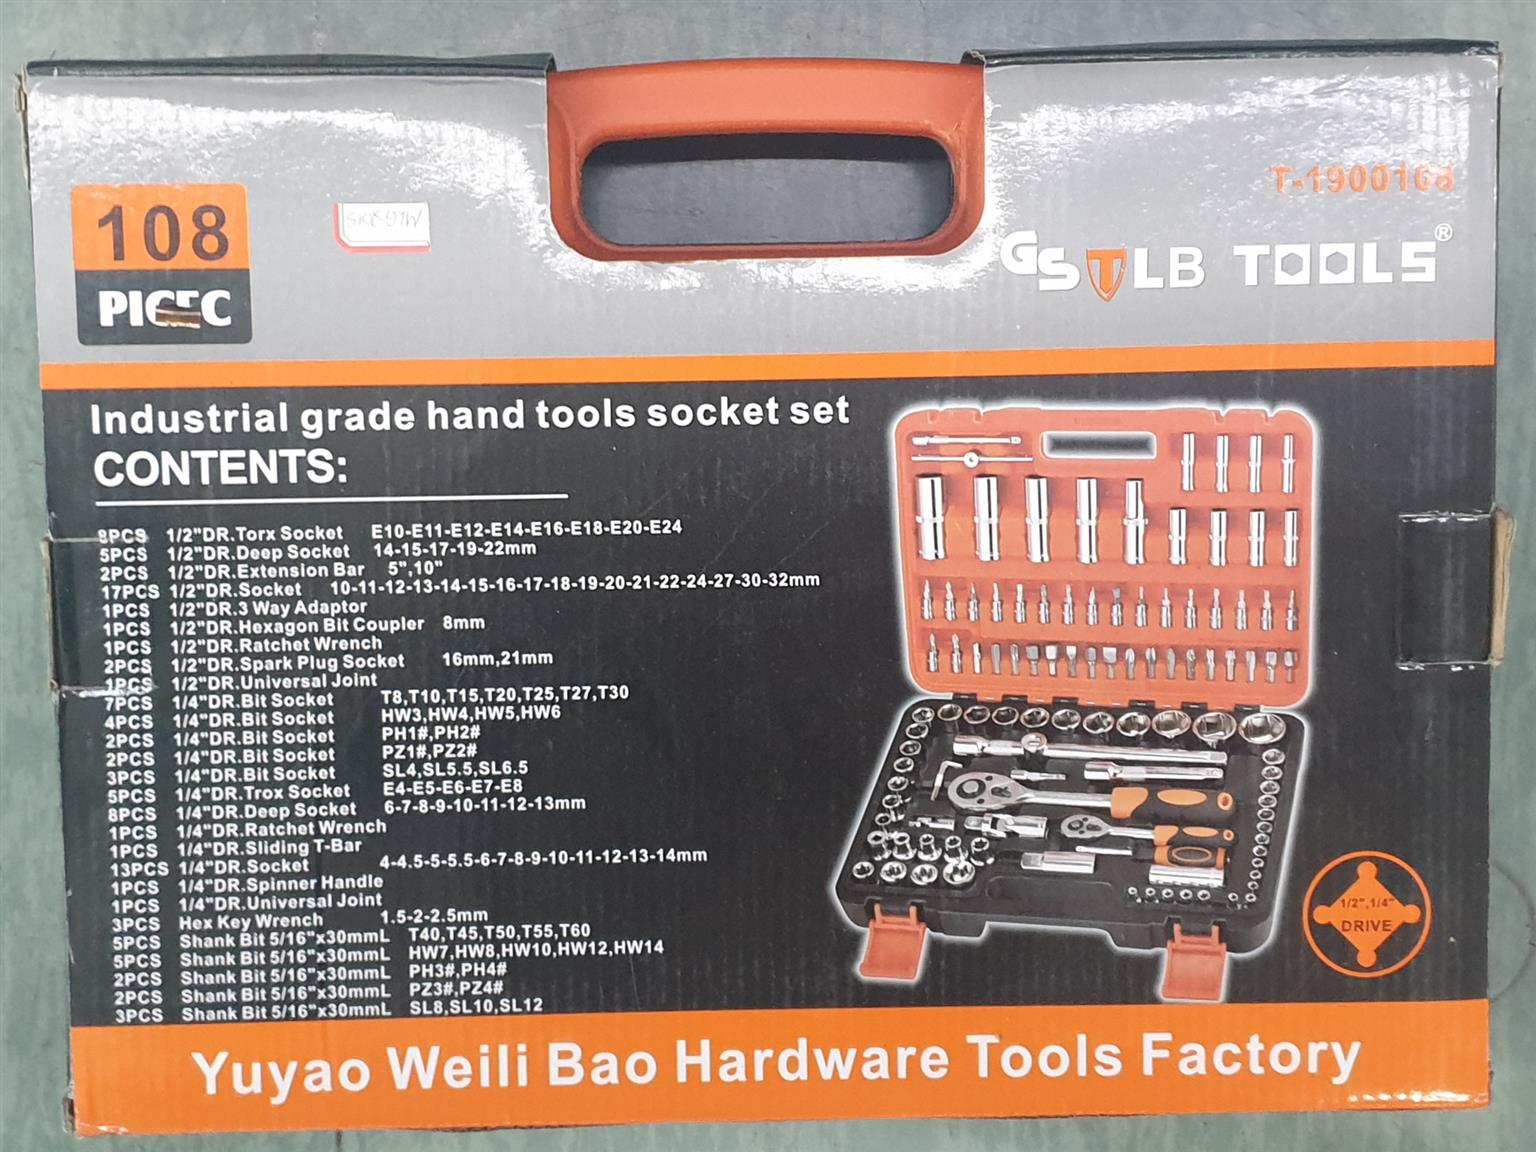 WShop Tools 108 Pieces Industrial Grade hand tools and socket set